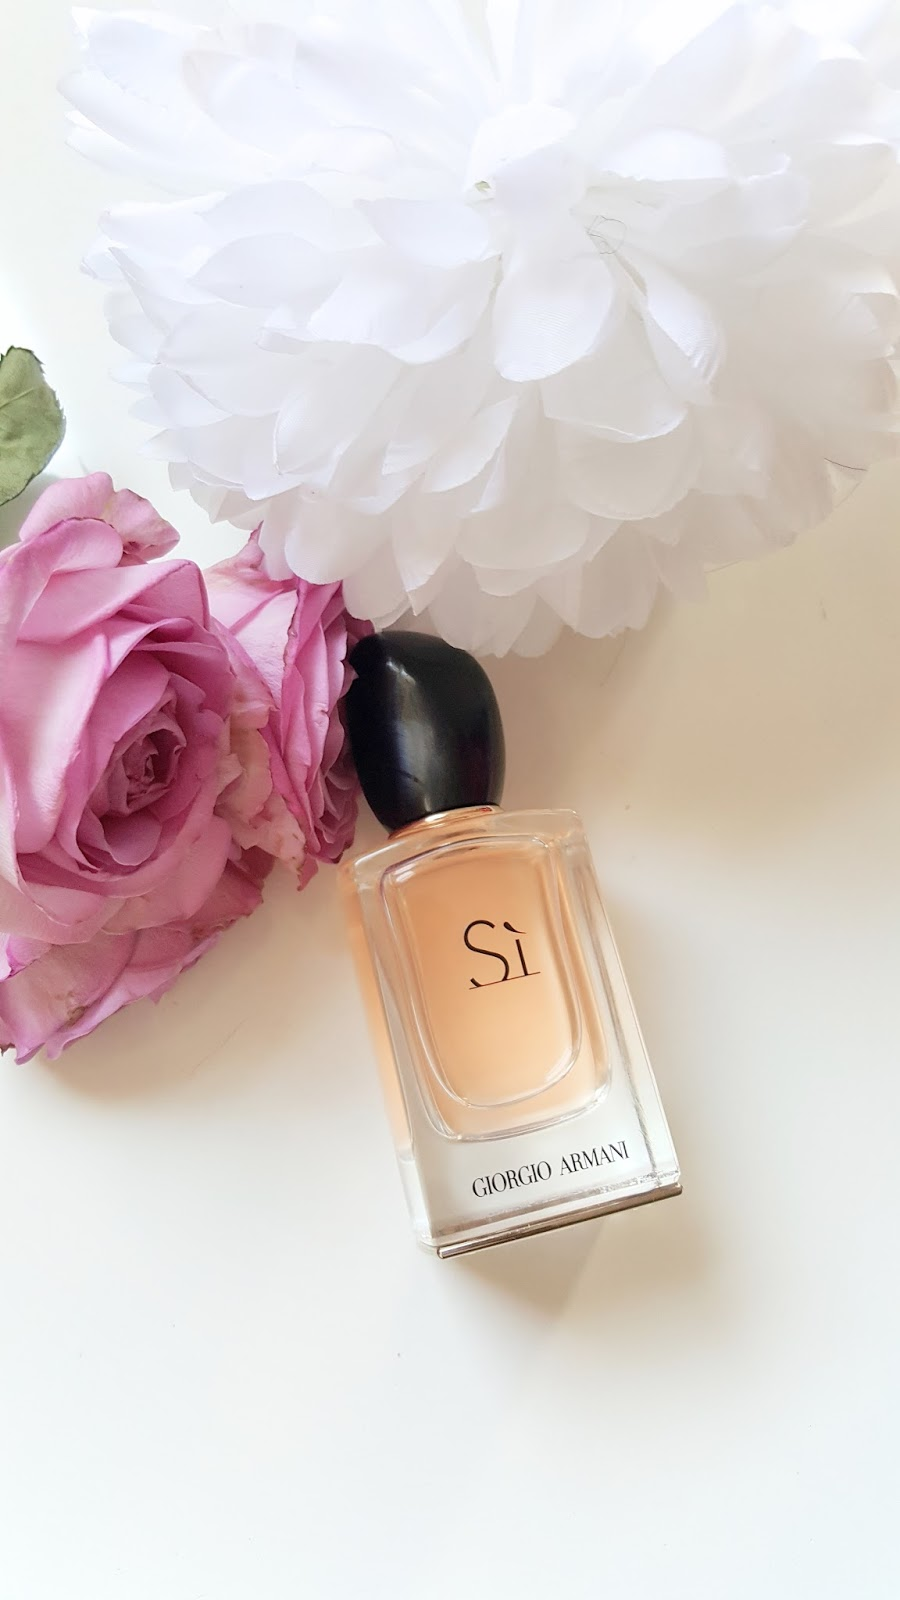 Giorgio Armani Si, Scent That Has Me Swoon